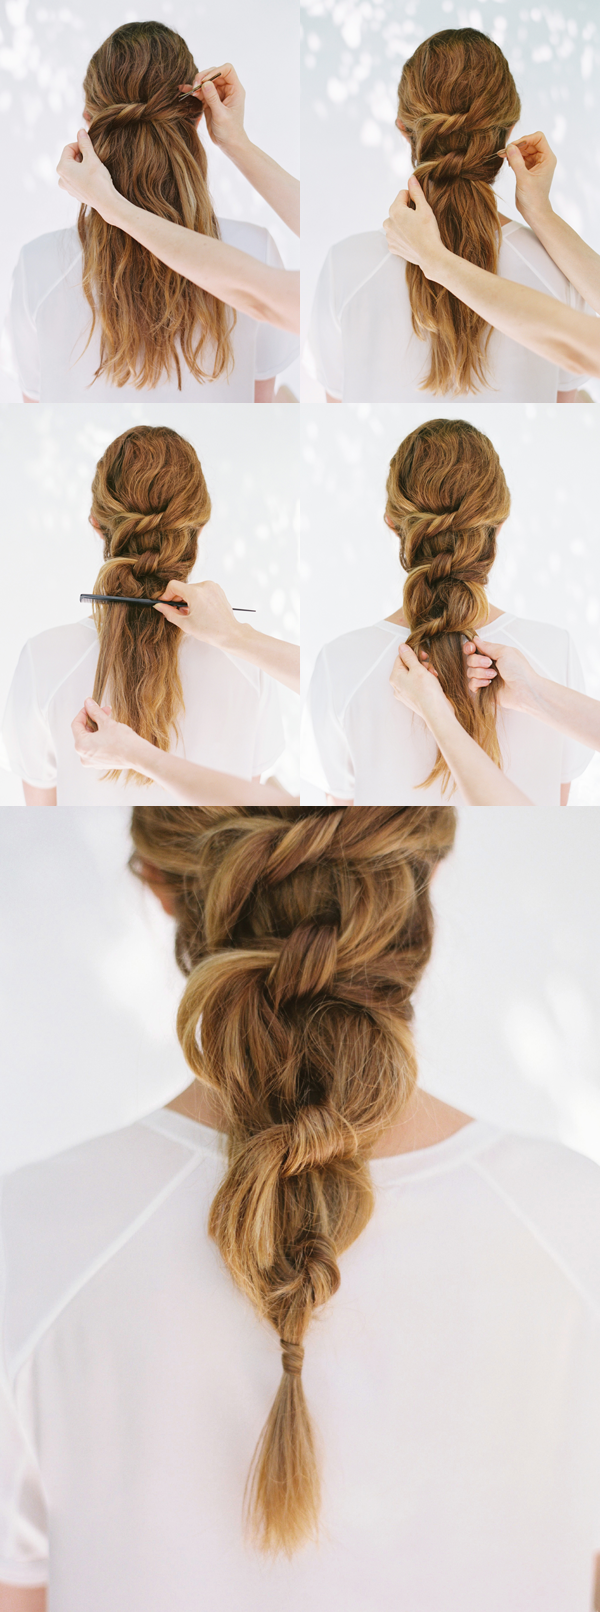 diy-knotted-pony-wedding-hairstyles-for-long-hair